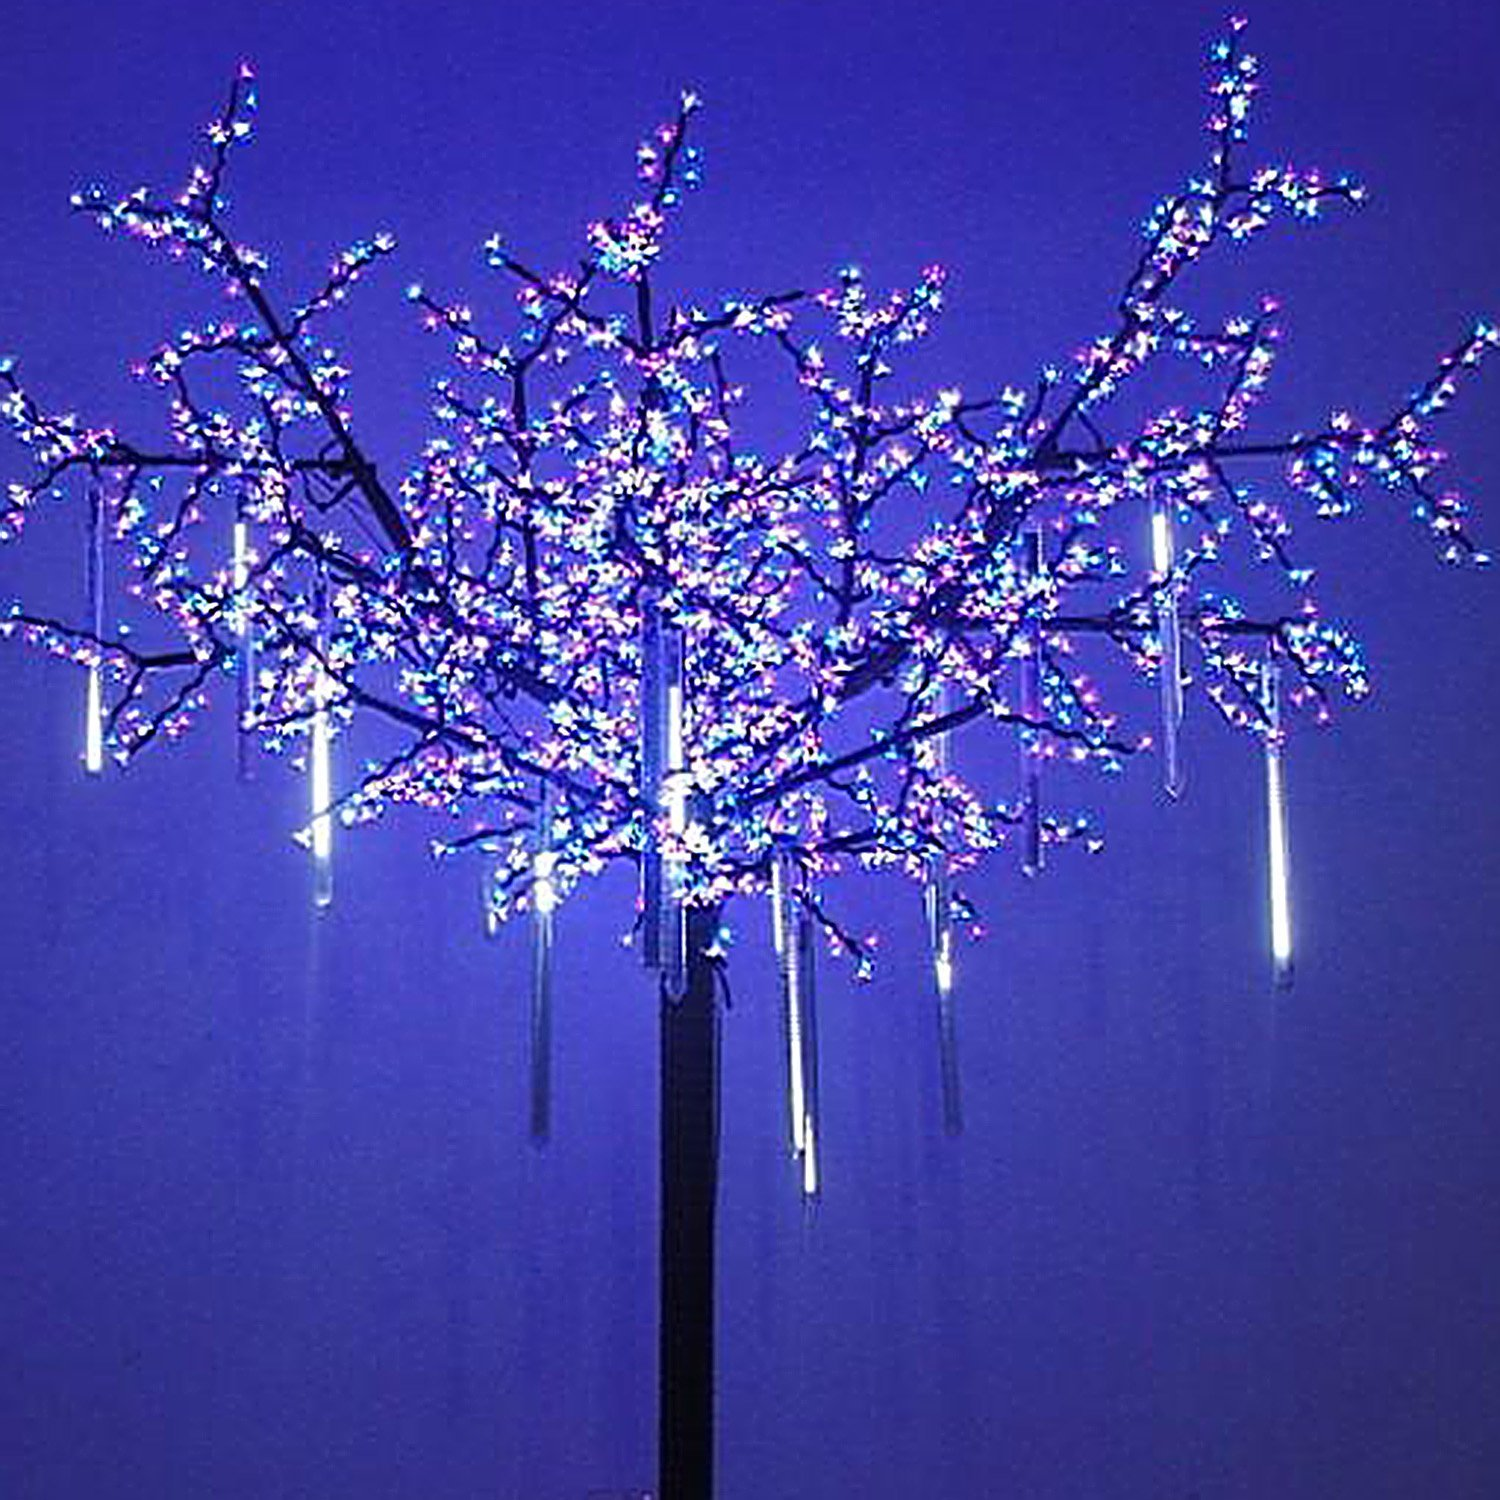 Details About 8 Led Fall String Fairy Light Rain Drop Icicle Snow Xmas Tree Cascading Decor Us